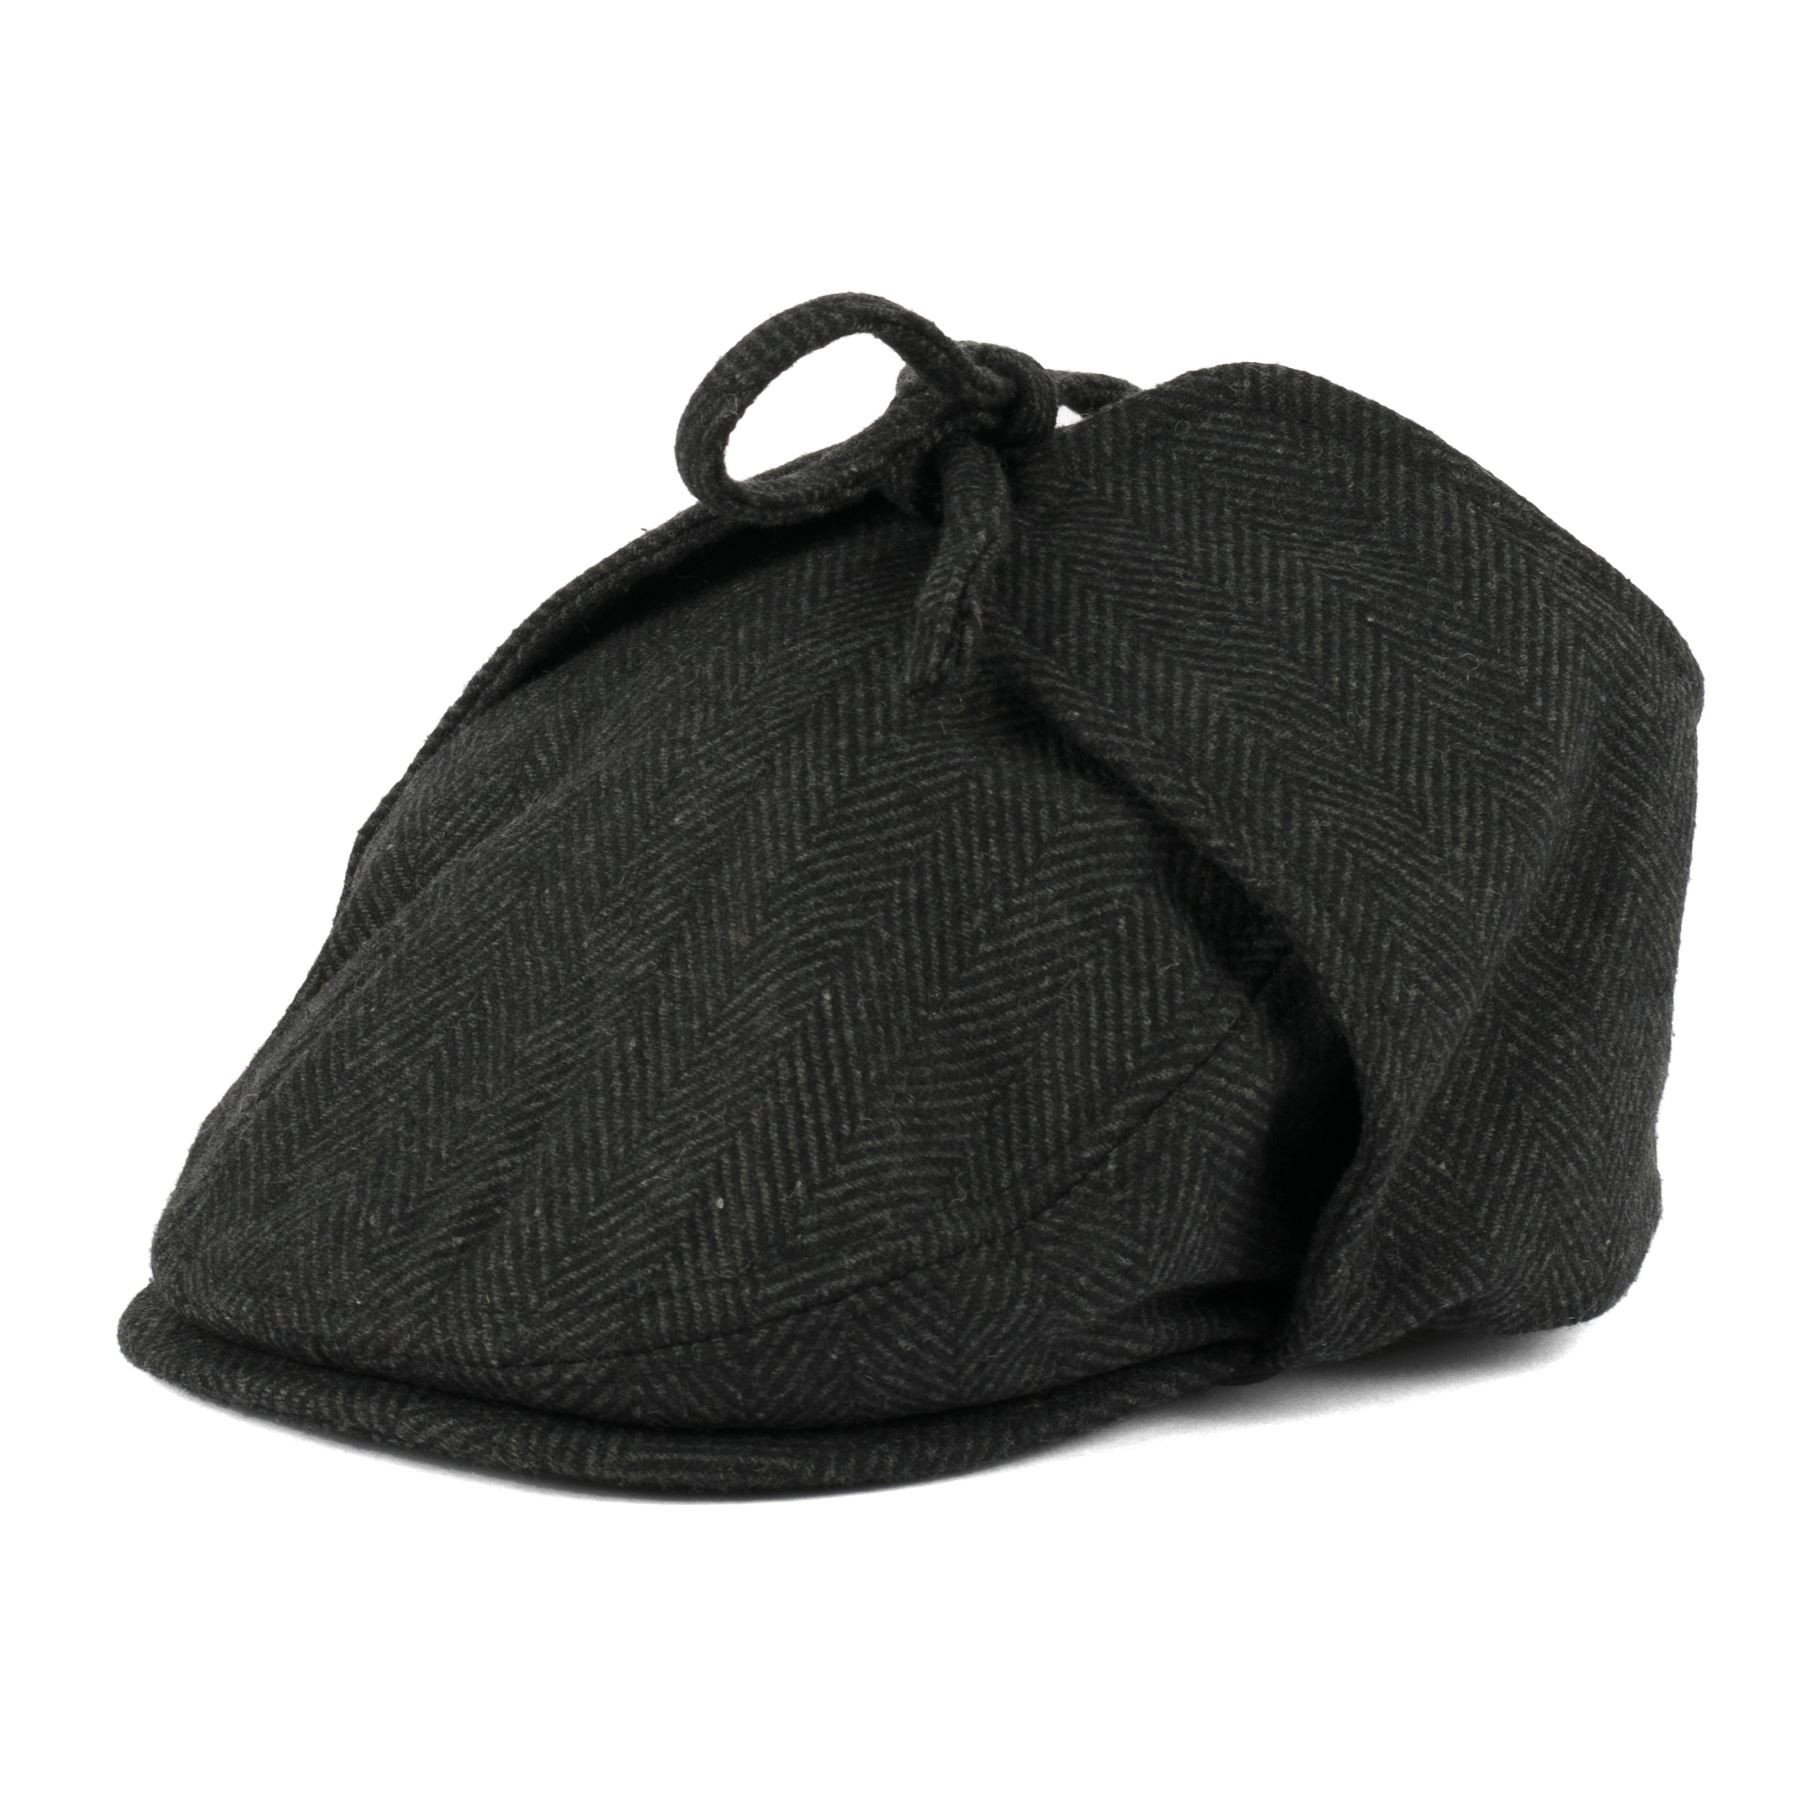 Hat with Ear Flaps Beautiful Herringbone Pattern Wool Blend Flat Cap with Ear Flaps Of Top 42 Photos Hat with Ear Flaps